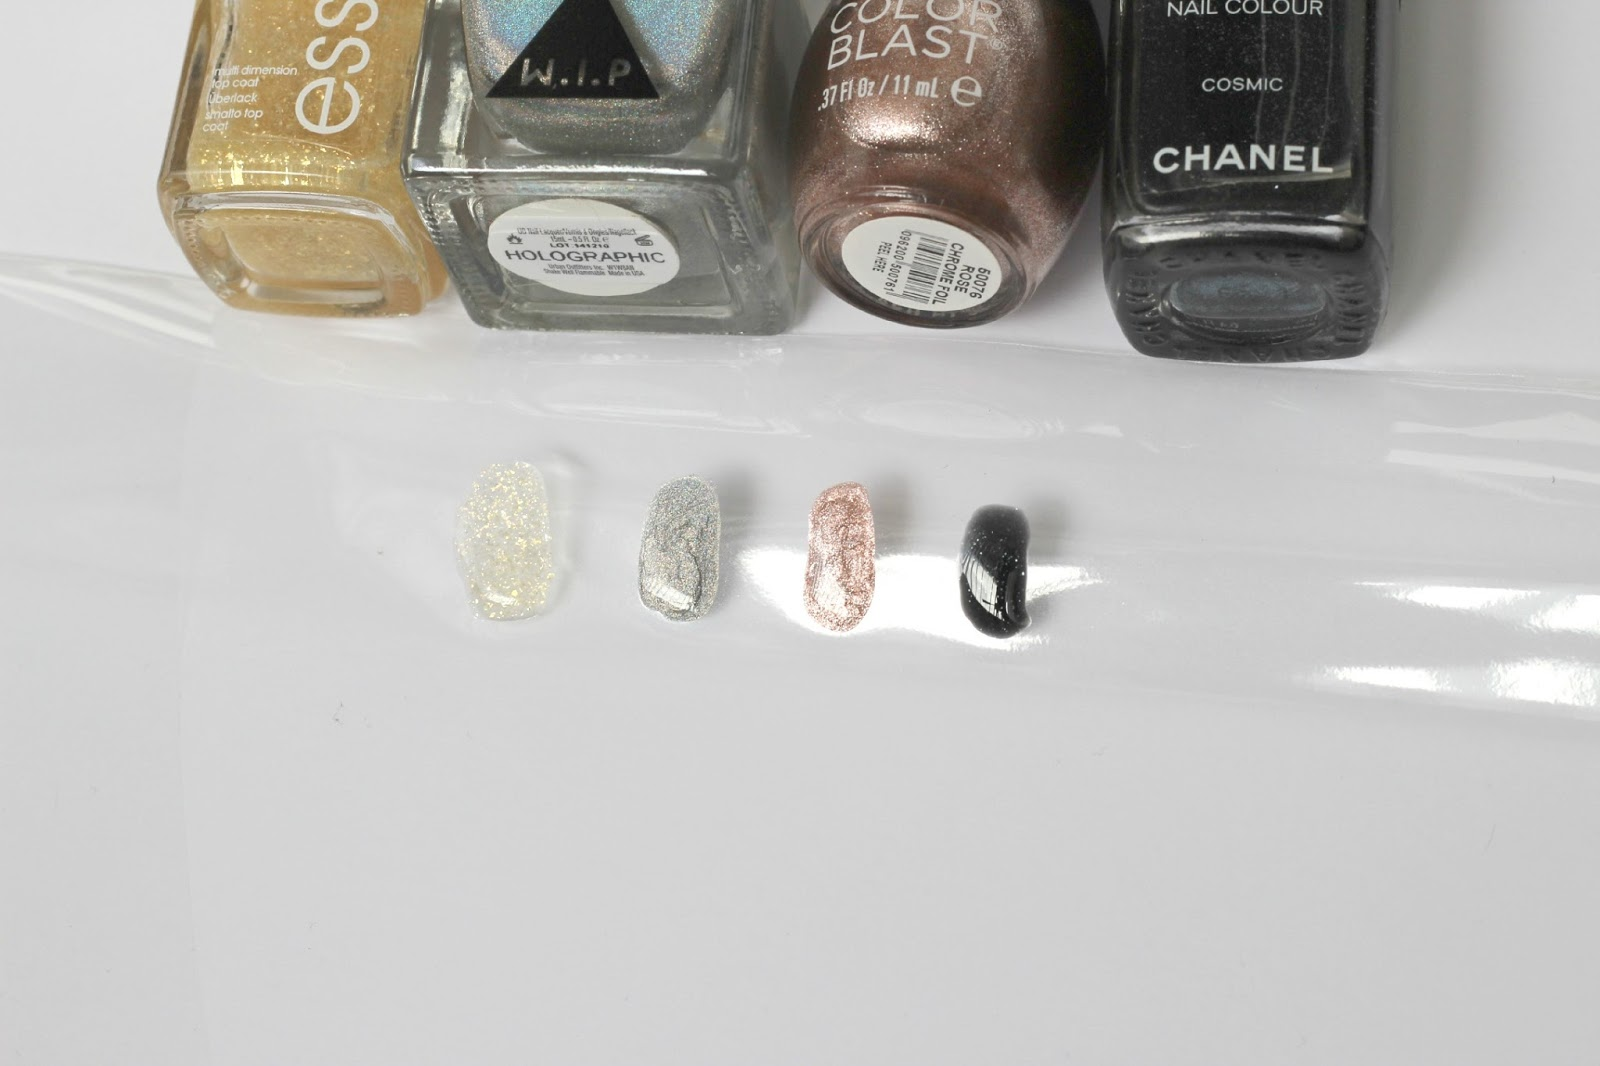 Essie, Urban Outfitters, Orly, Chanel